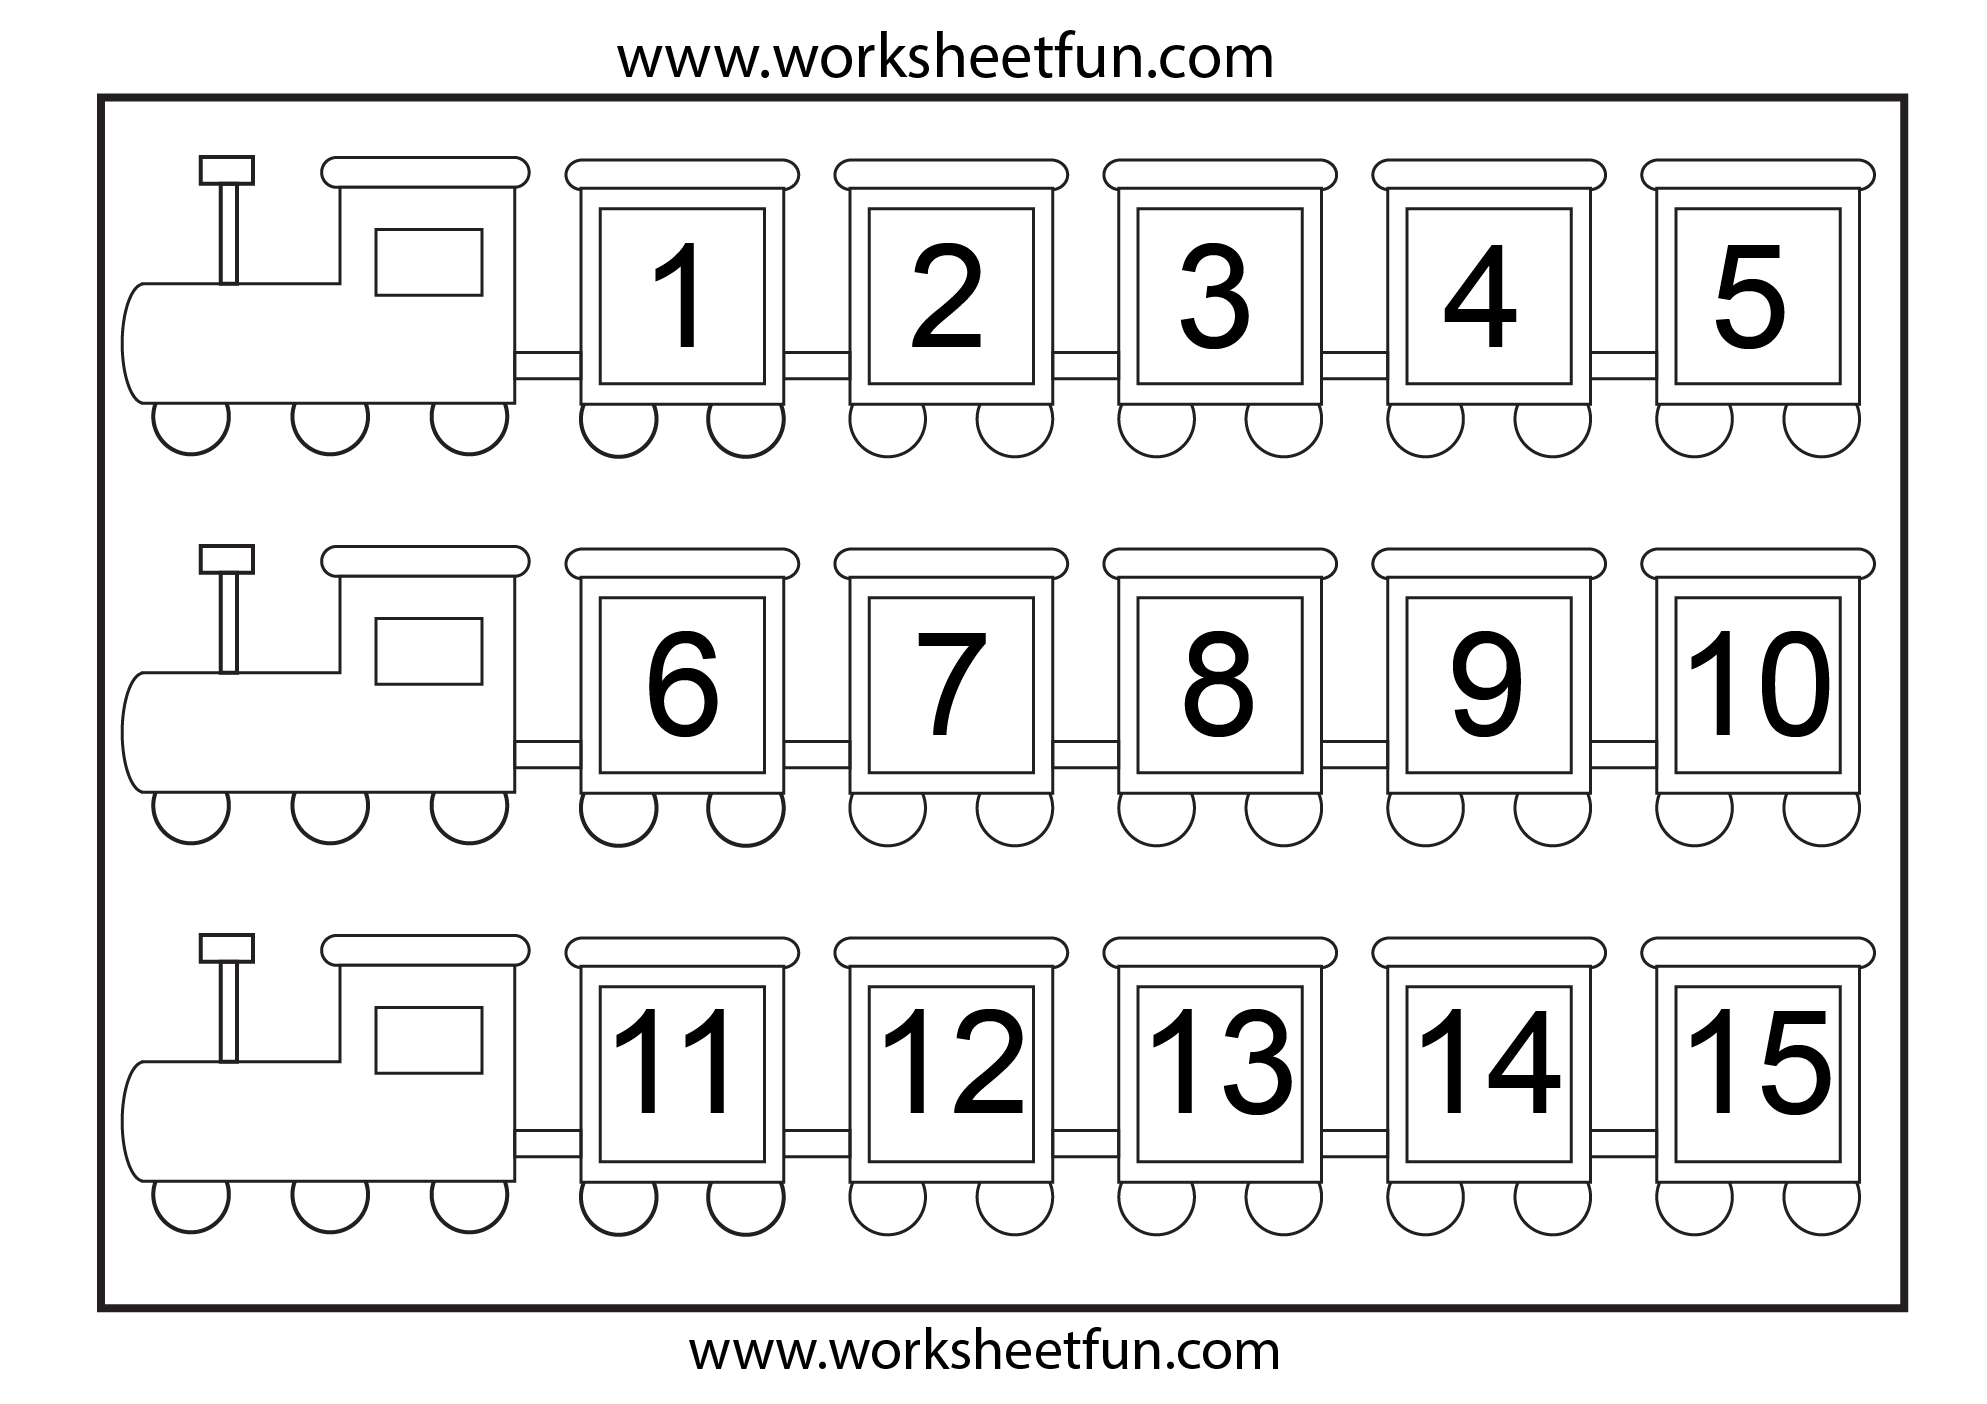 missing number worksheet: NEW 827 MISSING NUMBER WORKSHEET